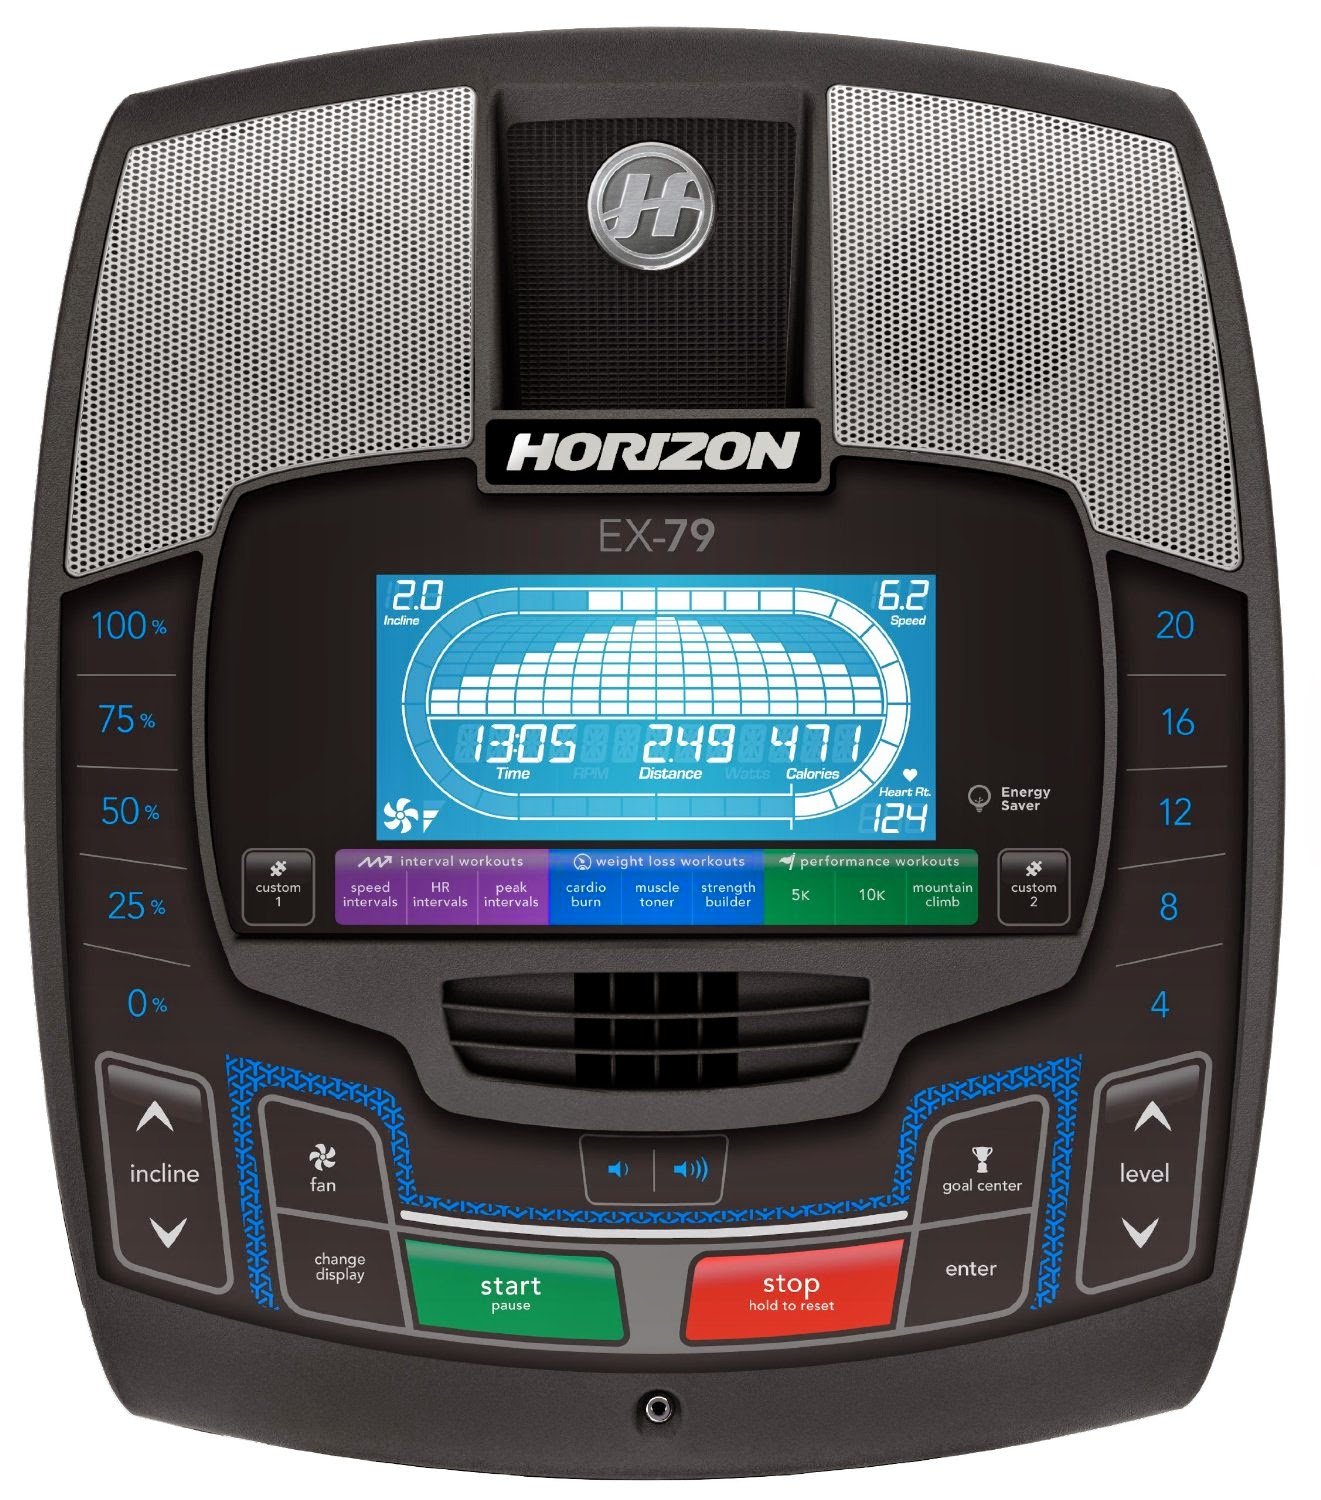 Horizon Fitness EX 79 2 Console, compared with EX 69 2 Elliptical Trainer